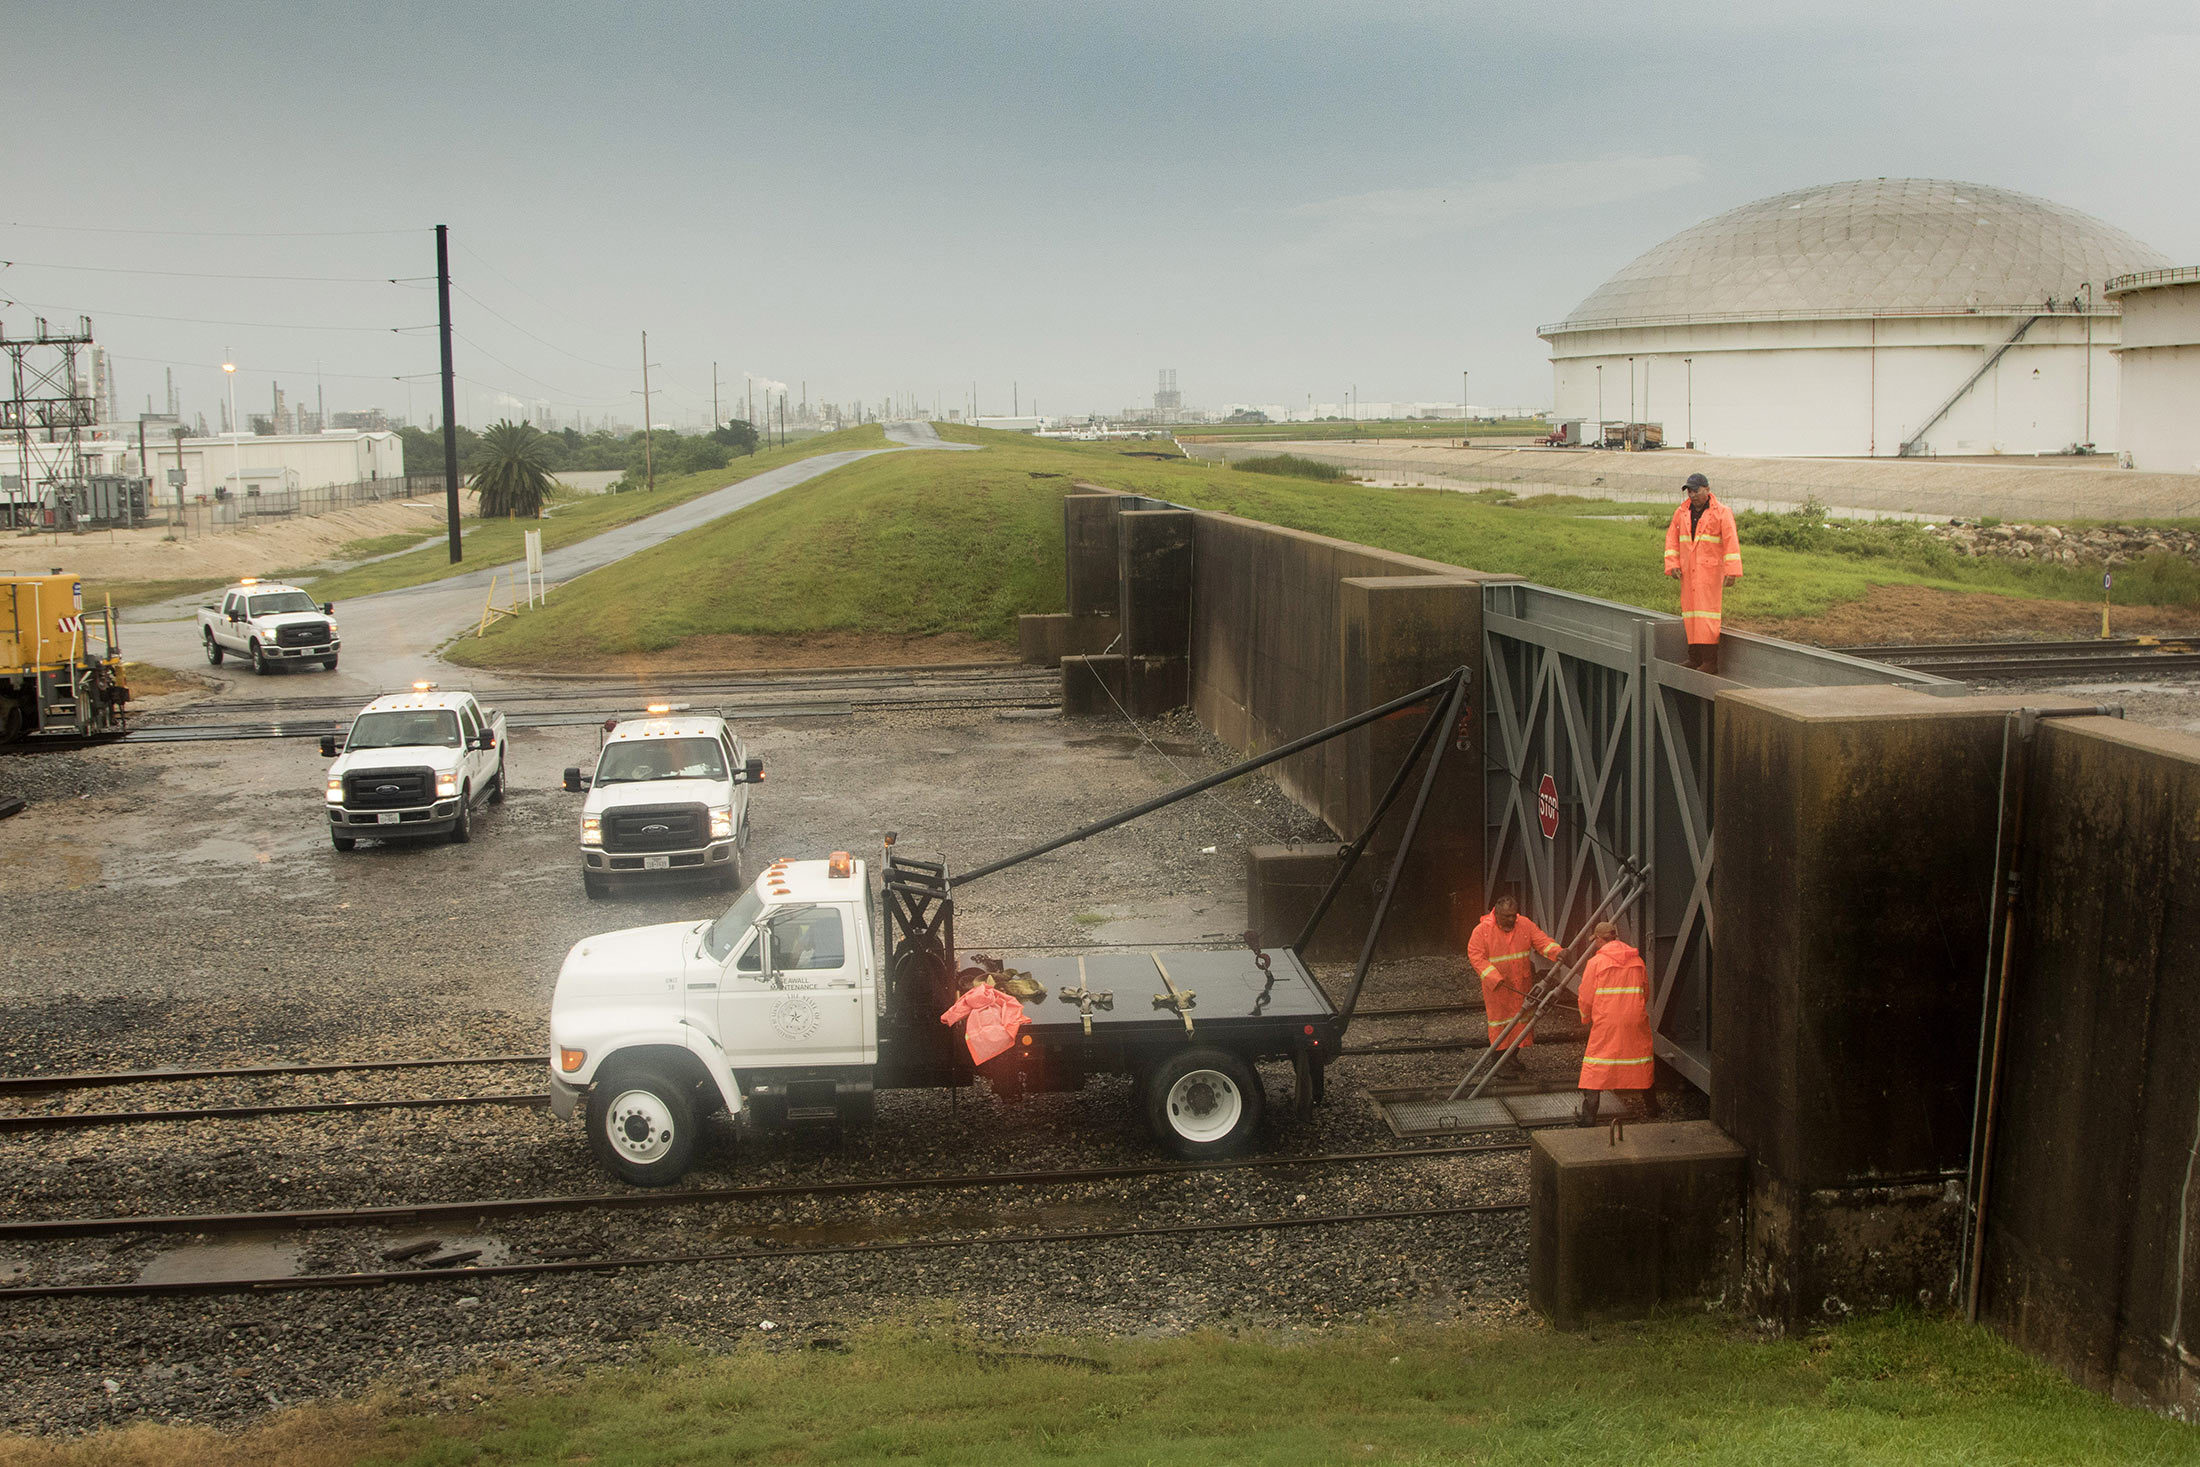 Workers secure a flood gate along the railroad tracks entering the Enterprise Products Partners LP marine terminal ahead of Hurricane Harvey in Texas City, Texas, U.S., on Friday, Aug. 25, 2017. Hurricane Harveystrengthened as it headed toward landfall in Texas, forecast to become the worst storm to strike the region in more than a decade. The price of gasolineralliedas it threatened to wreak havoc on the heart of America's energy sector. Photographer: F. Carter Smith/Bloomberg via Getty Images